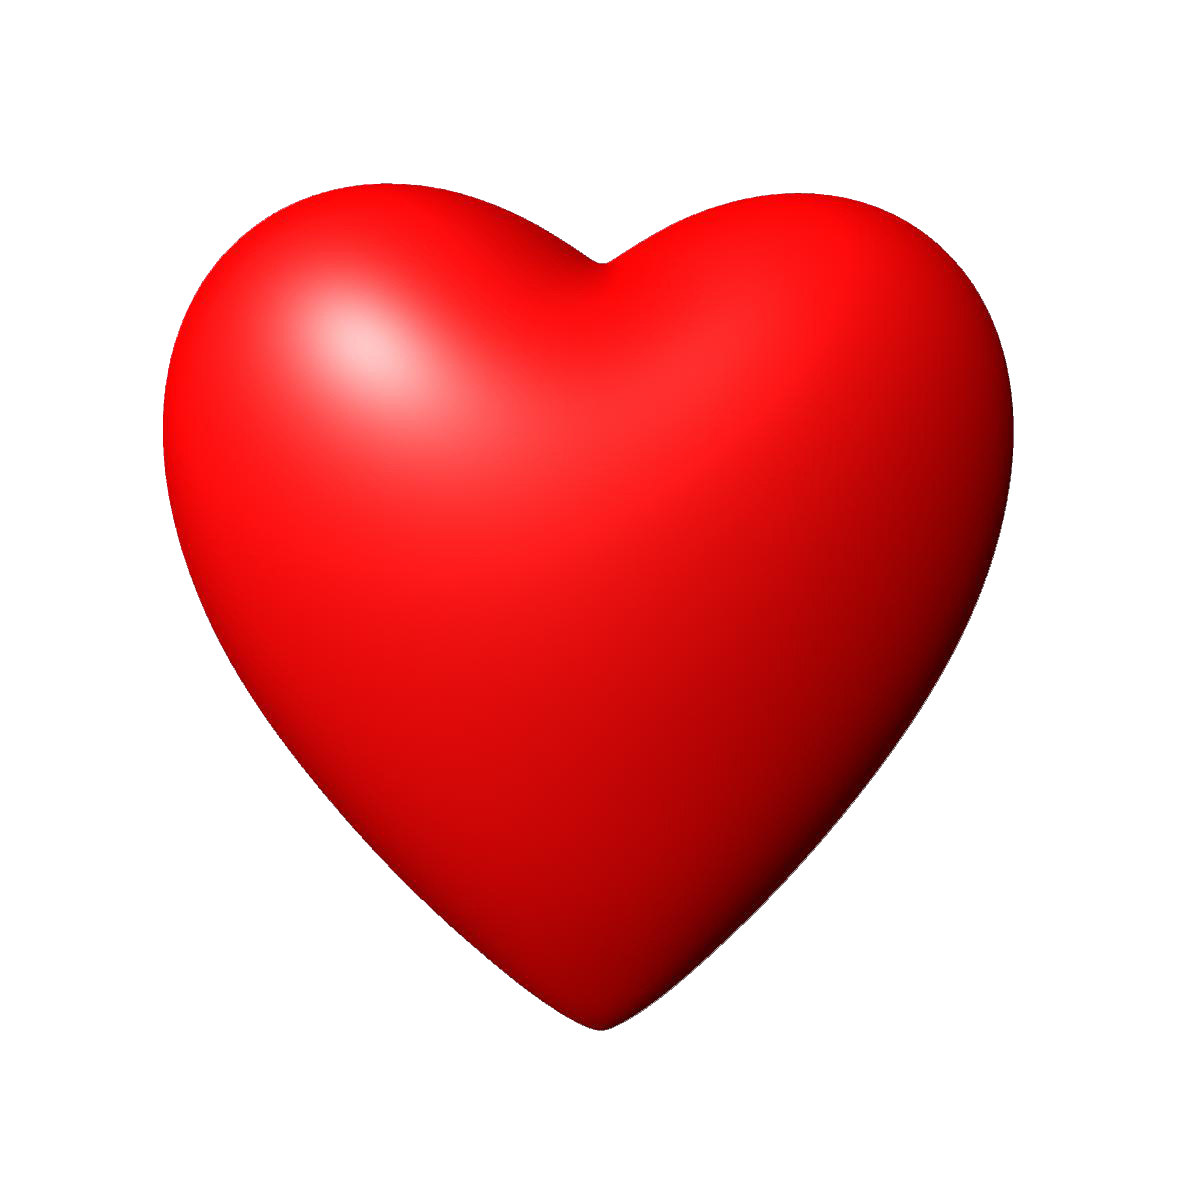 Download 3D Red Heart Image HQ PNG Image | FreePNGImg